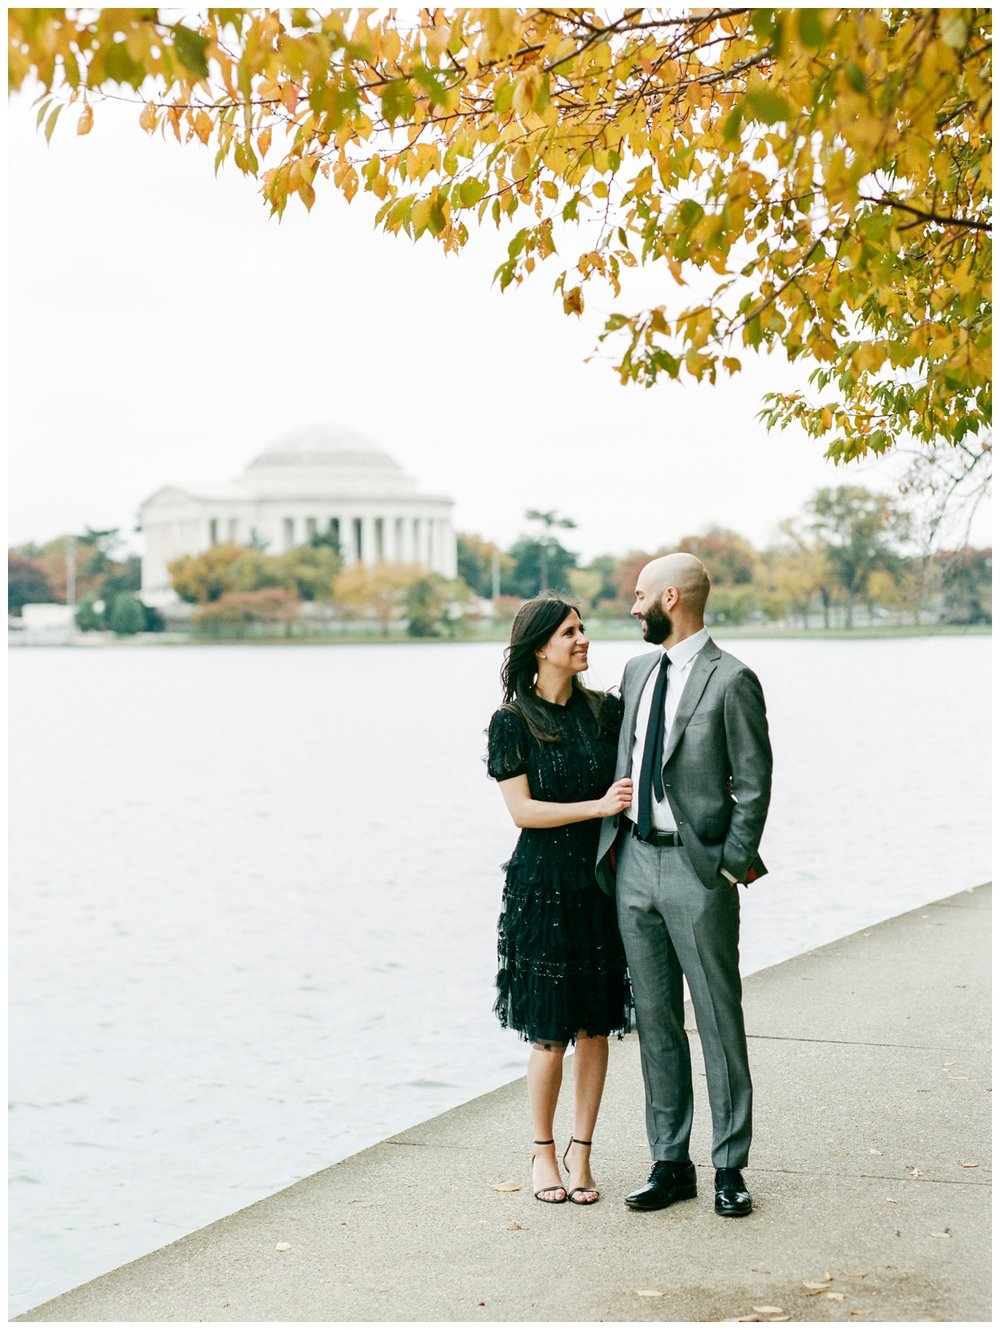 Elegant winter engagement session at the Jefferson Memorial Washington DC by fine art wedding photographer Lissa Ryan Photography